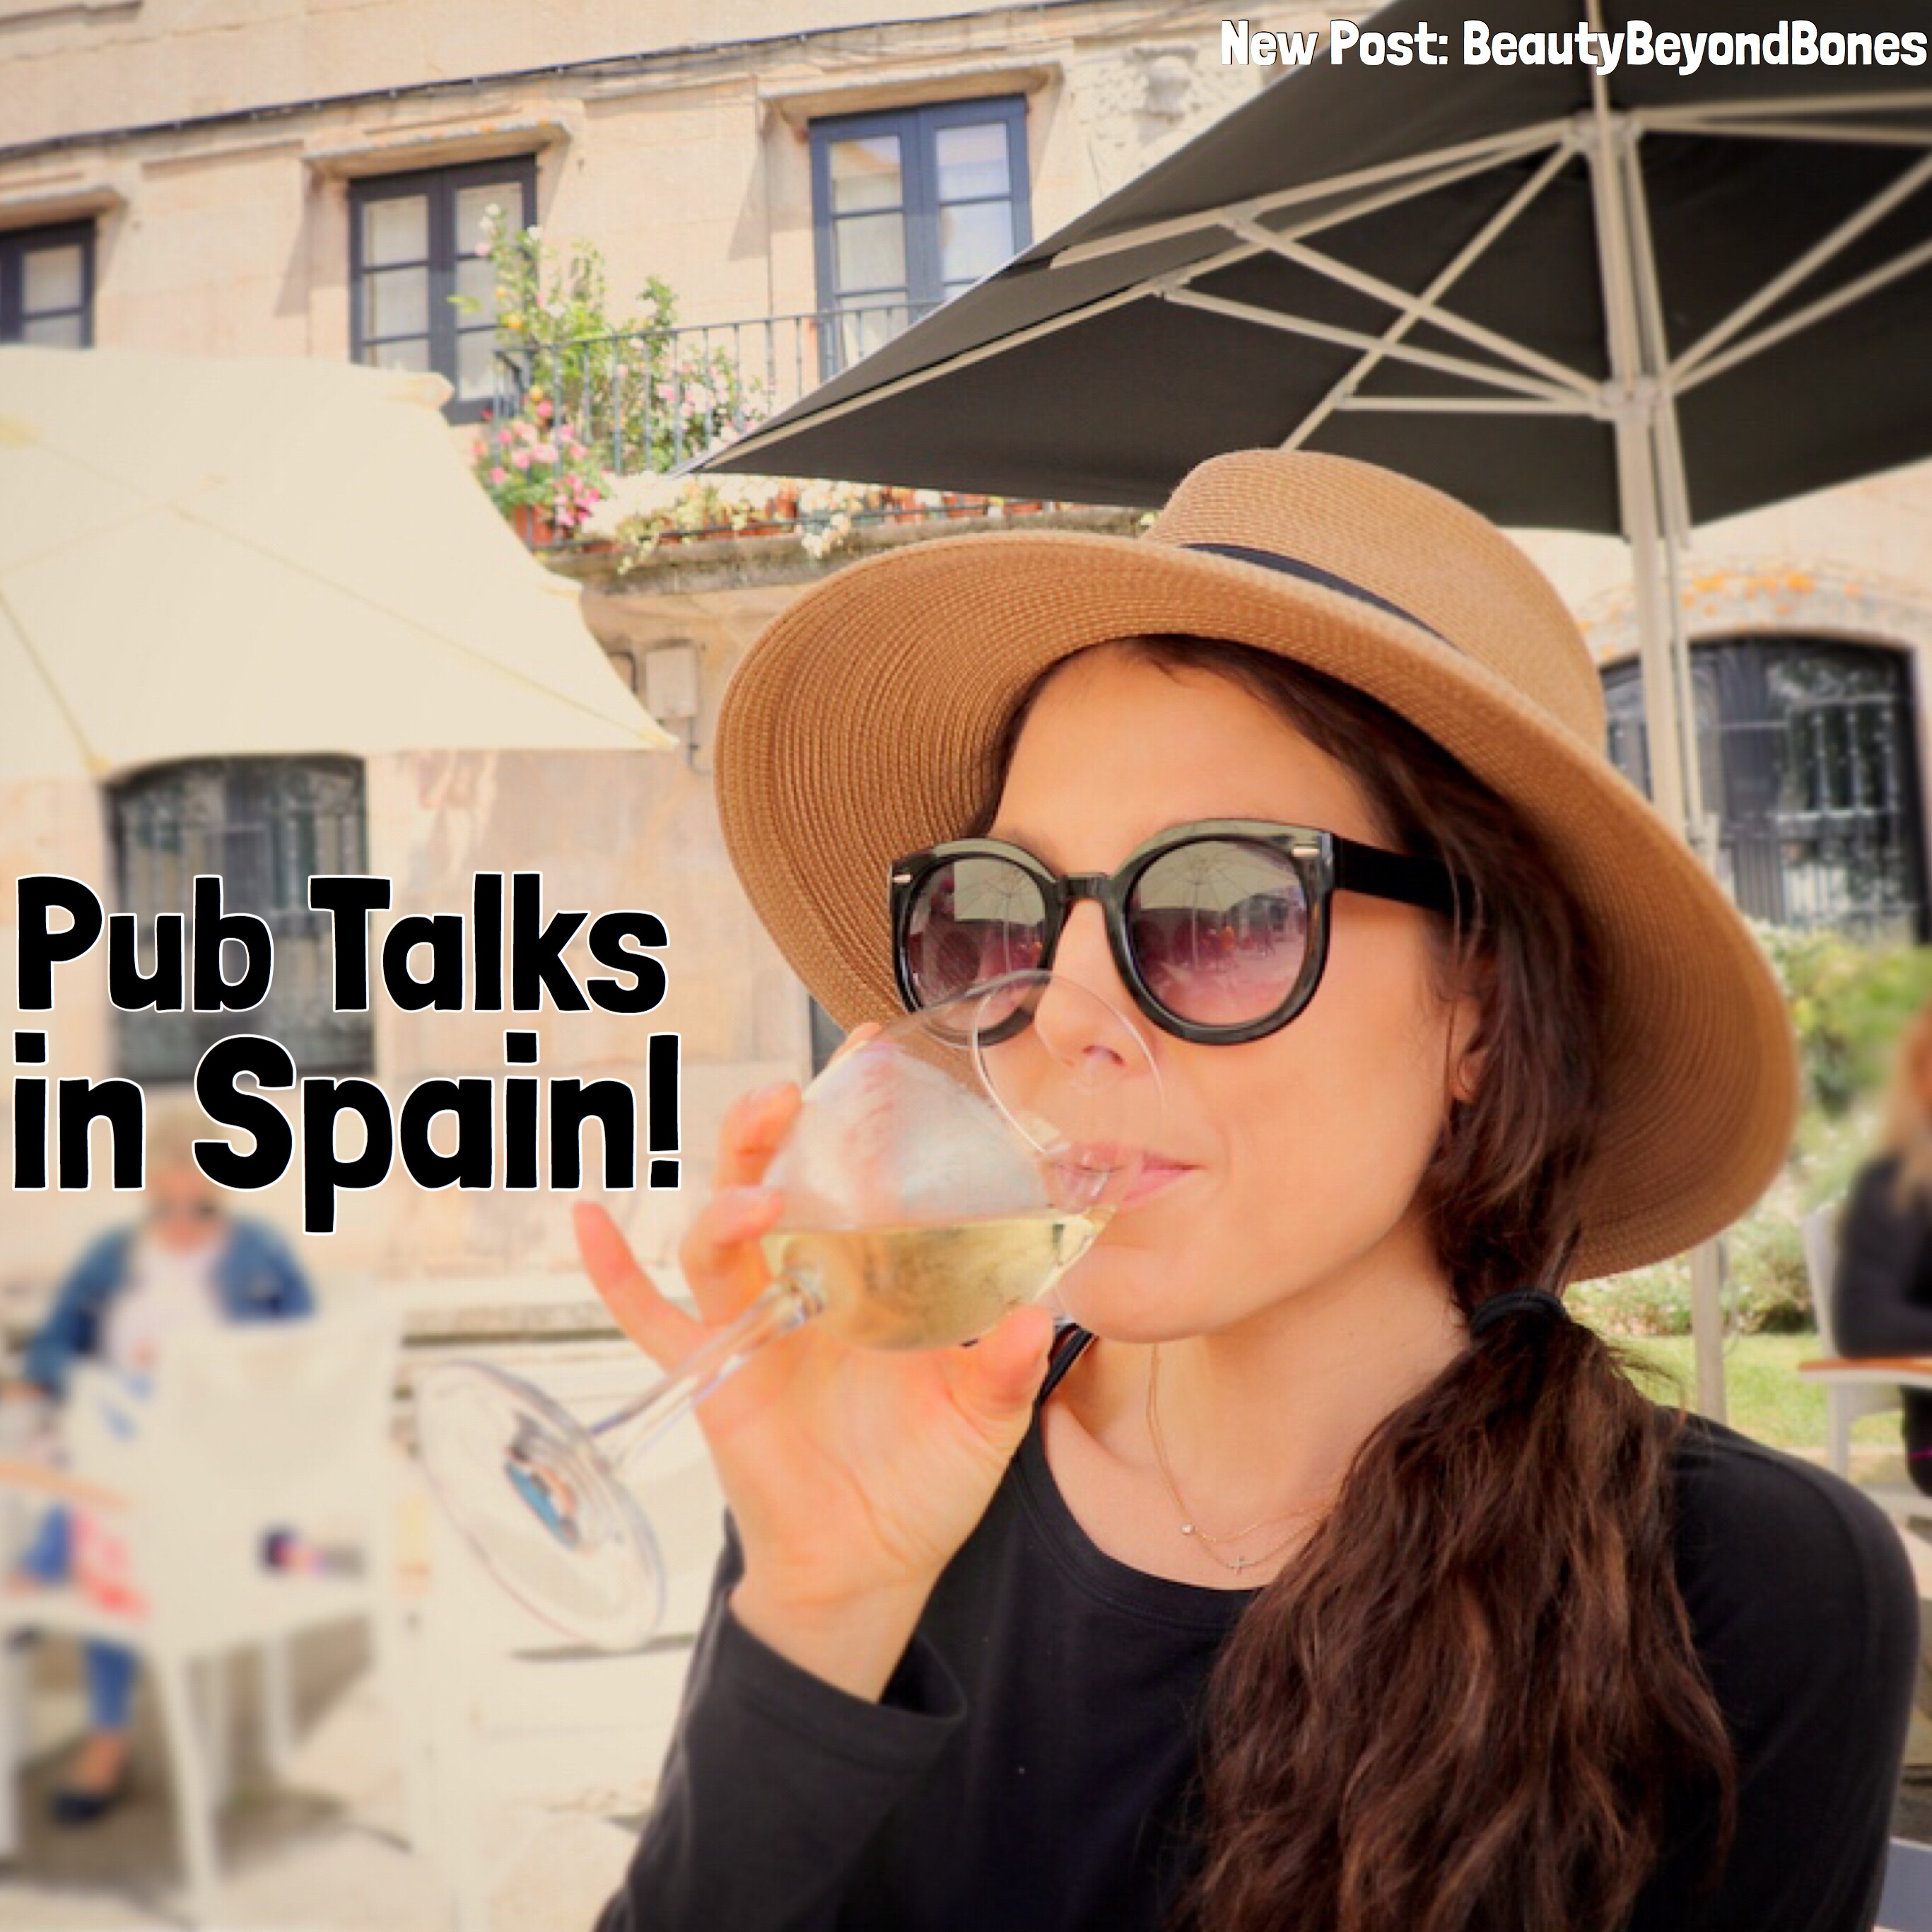 Pub Talks in Spain!